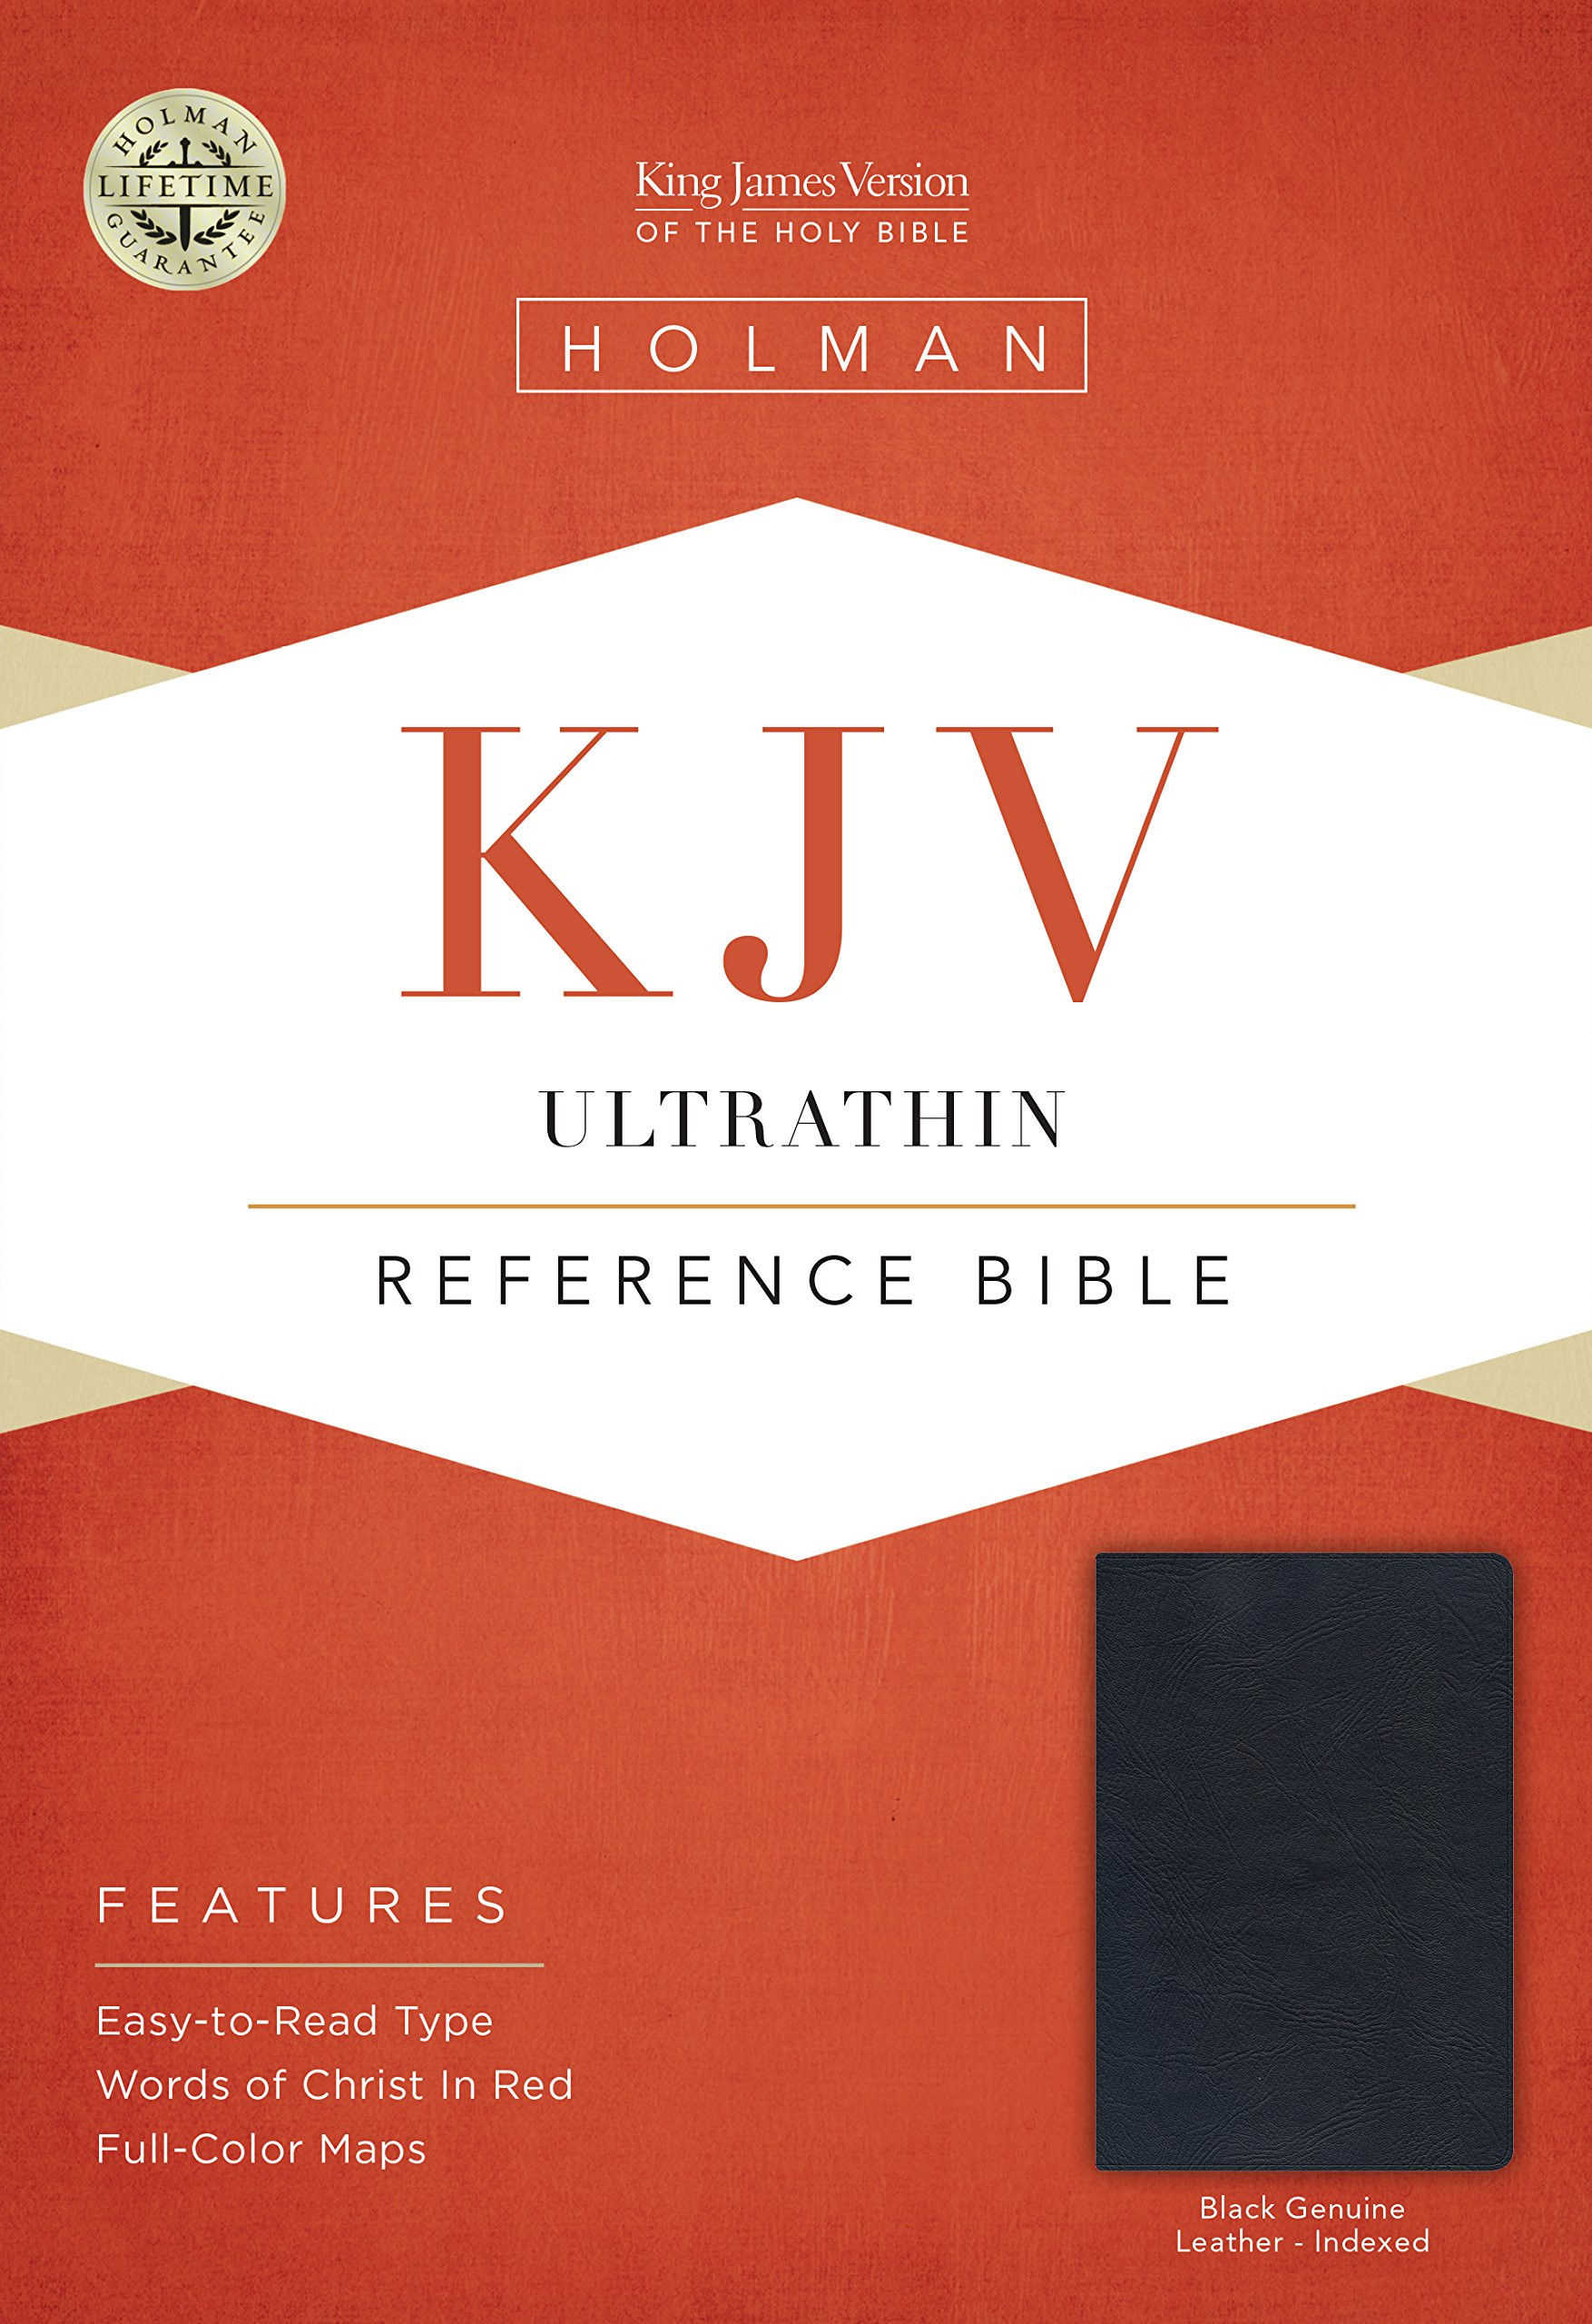 KJV UltraThin Reference Bible, Black Genuine Leather Indexed PDF ePub book